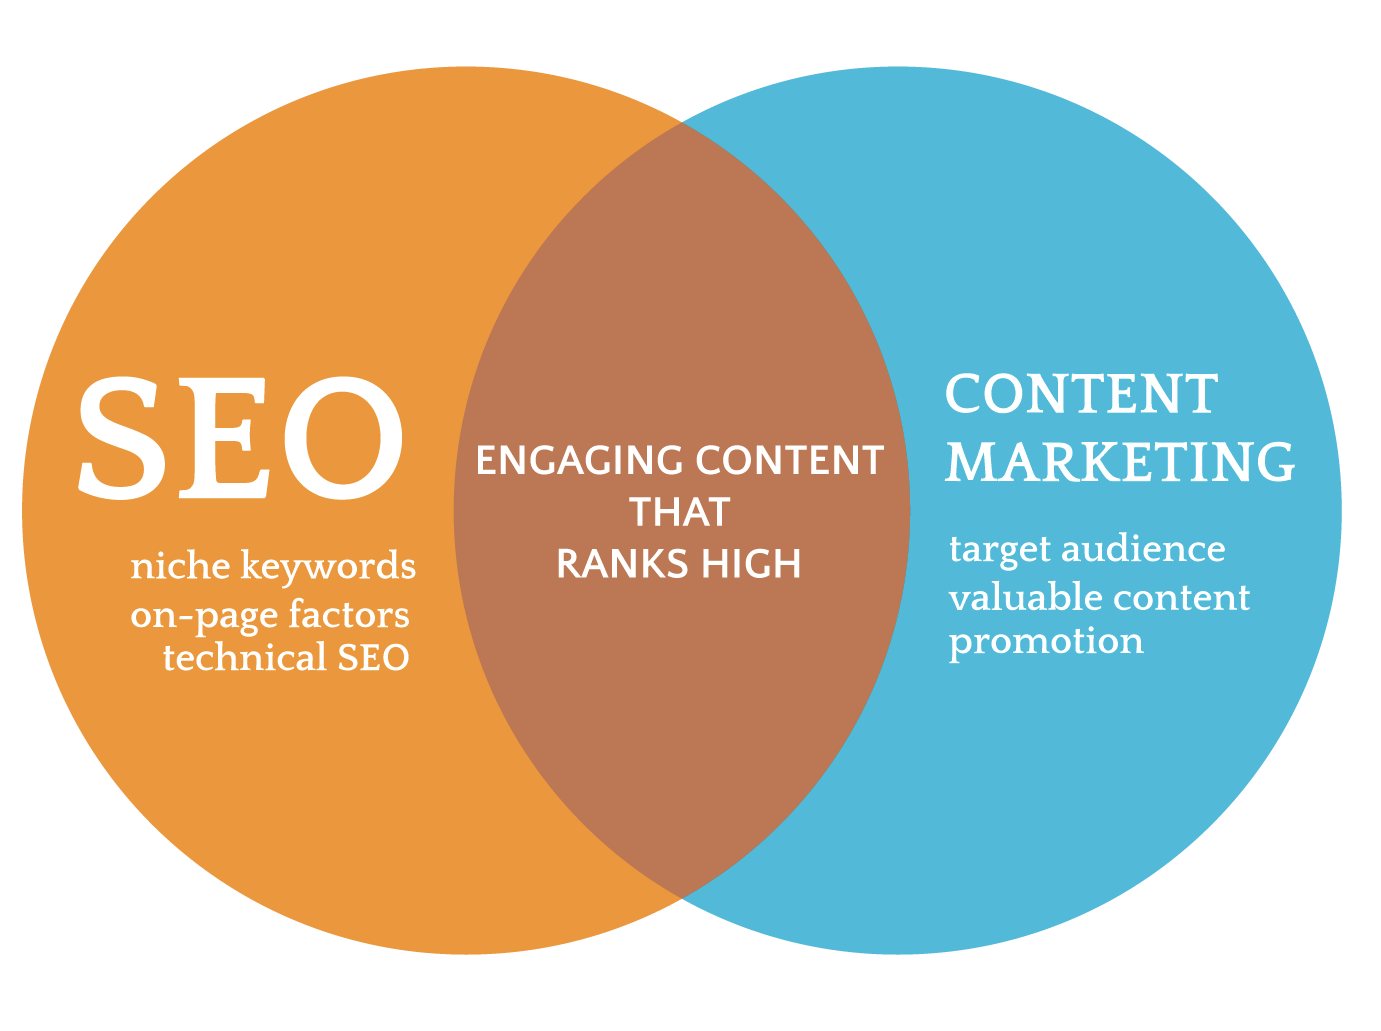 SEO-and-Content-MKTG-venn-diagram